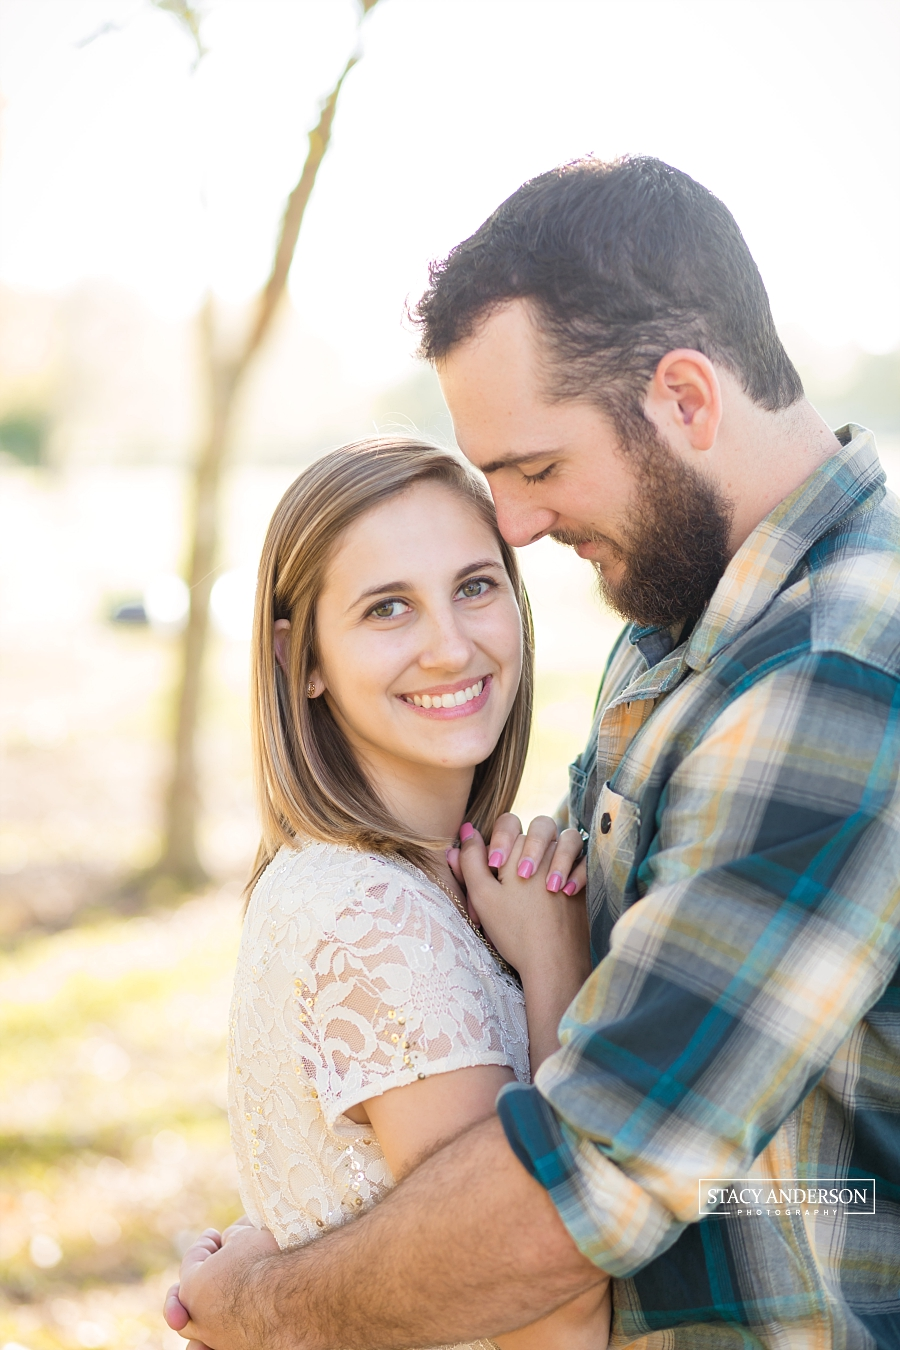 stacy-anderson-photography-alvin-wedding-photographer_0014